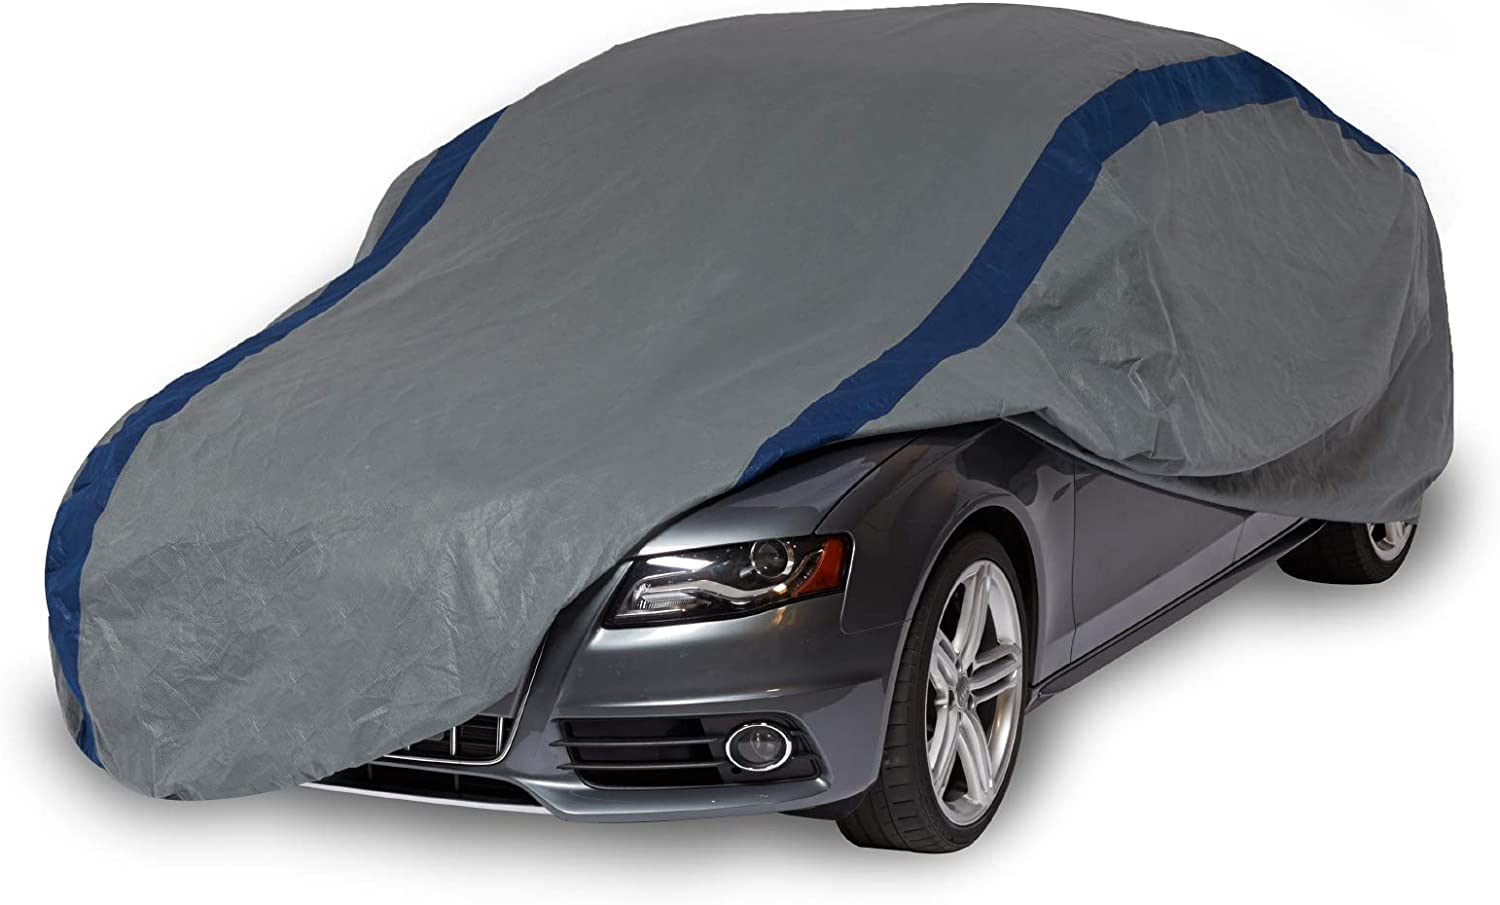 Duck Covers Weather Defender Car Cover for Sedans up to 16' 8""